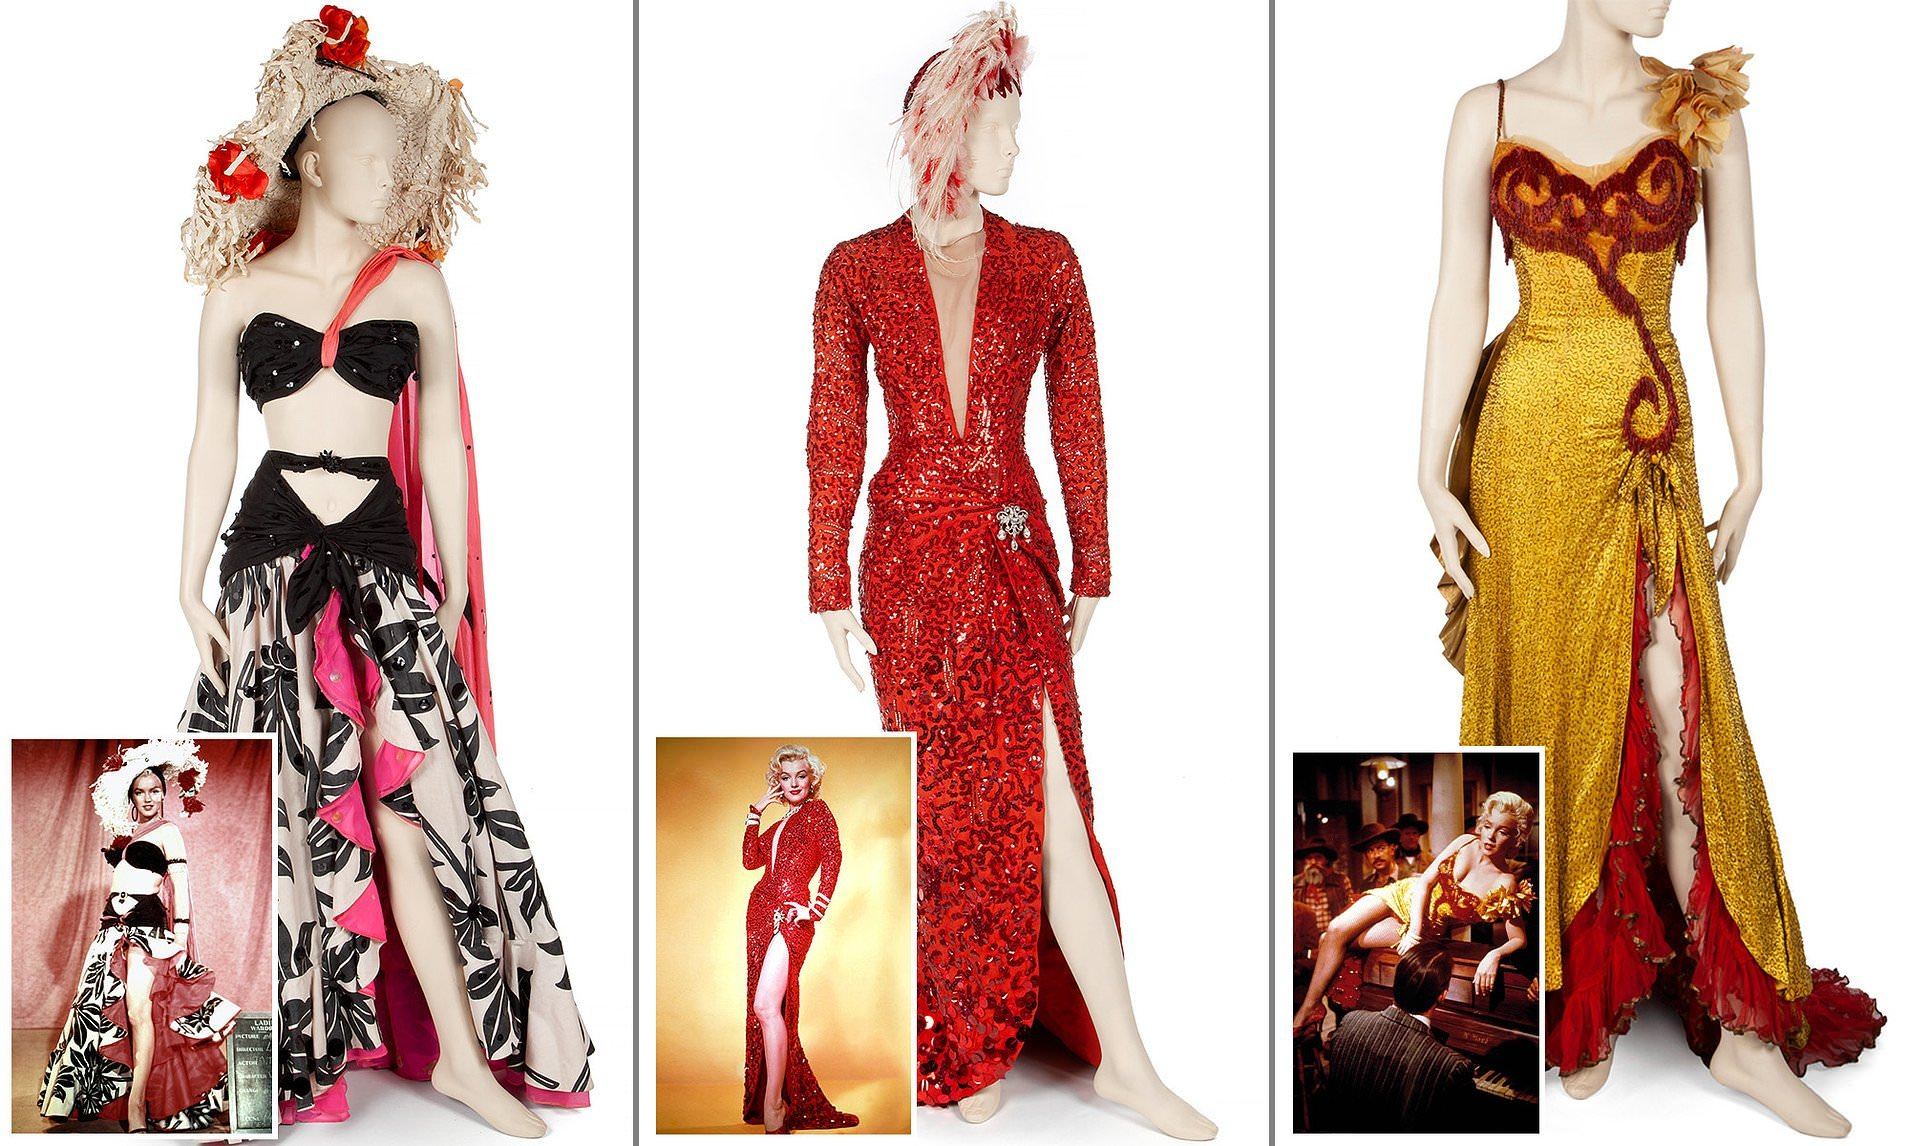 collection of marilyn monroe outfits sells at auction